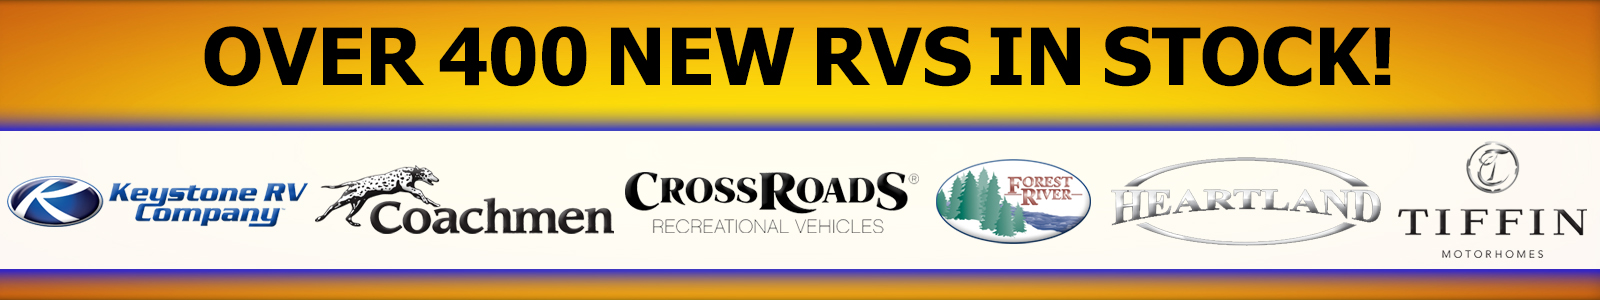 Over 400 New RVs in Stock!